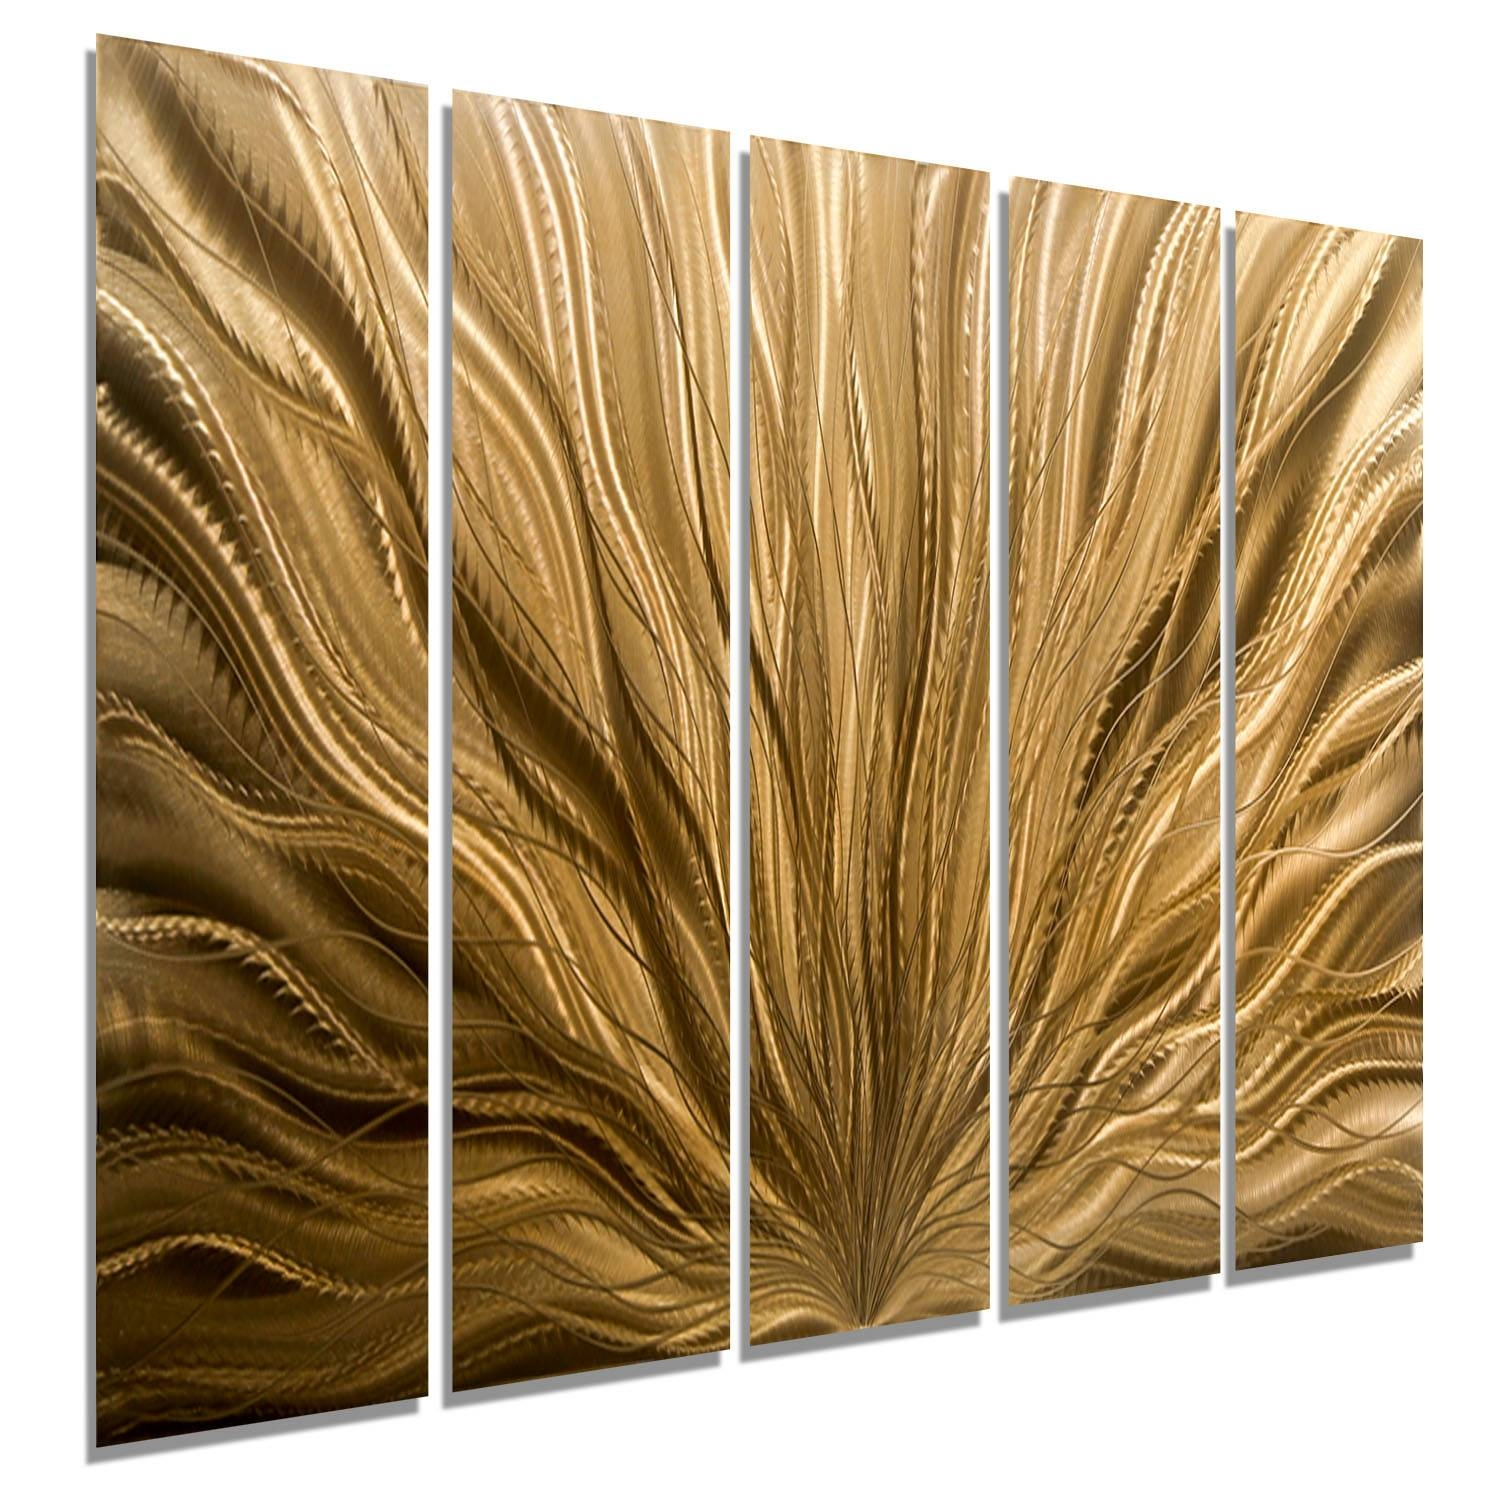 Copper Plumage Epic – Extra Large Light Copper Abstract Metal Wall Intended For Most Up To Date Abstract Metal Wall Art (View 18 of 20)